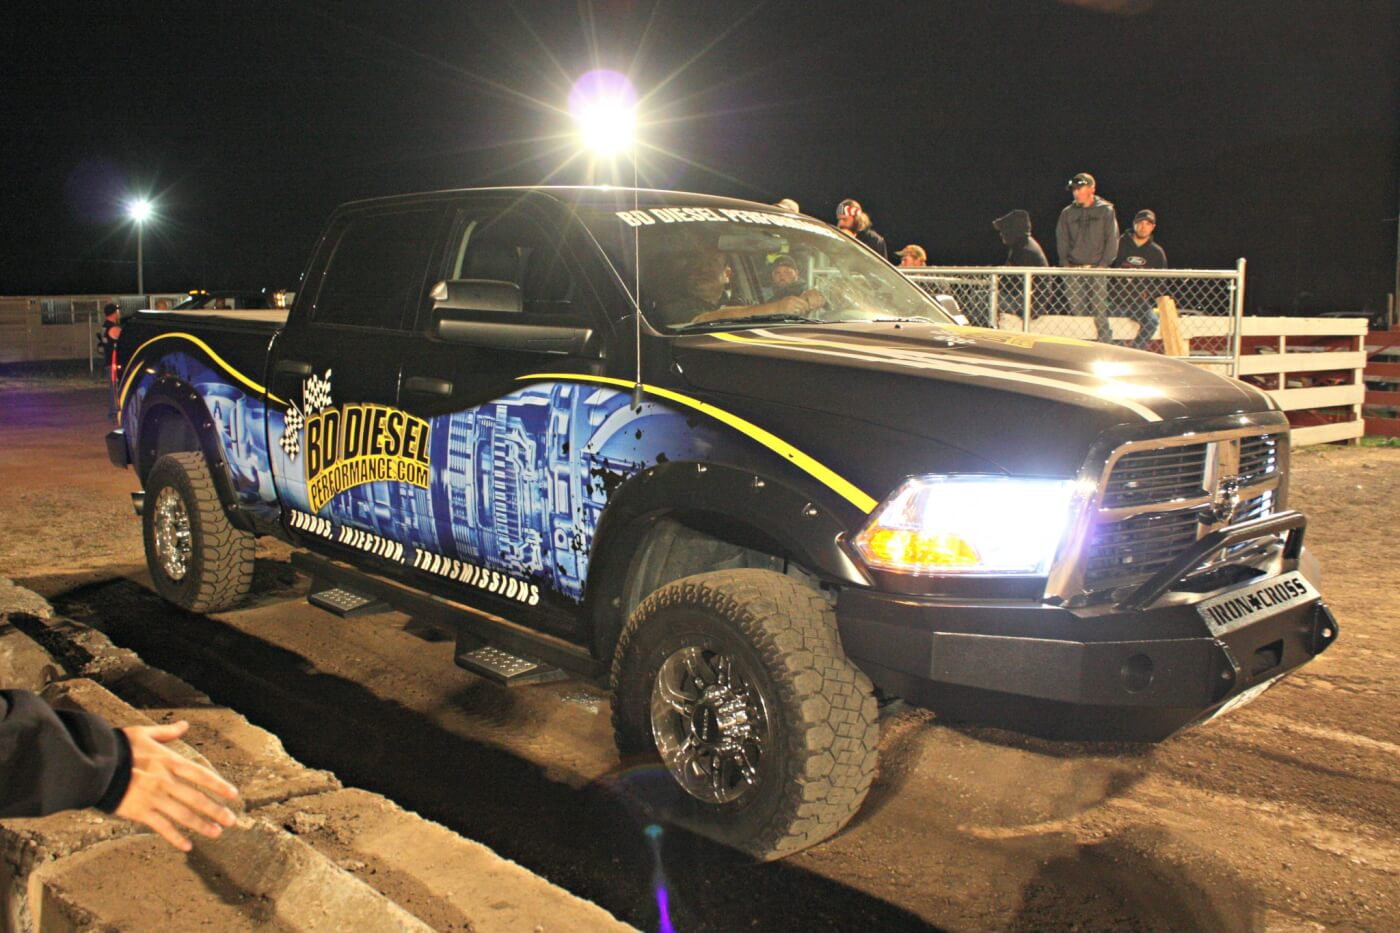 The crew at BD Diesel definitely knows how to market parts… plaster your name on the side of a truck equipped with your products and enter a dirt drag event. Chris Osborne of BD Diesel took this Dodge clear to the final round where he took the big win against Chris Rosscup's 2002 Duramax.